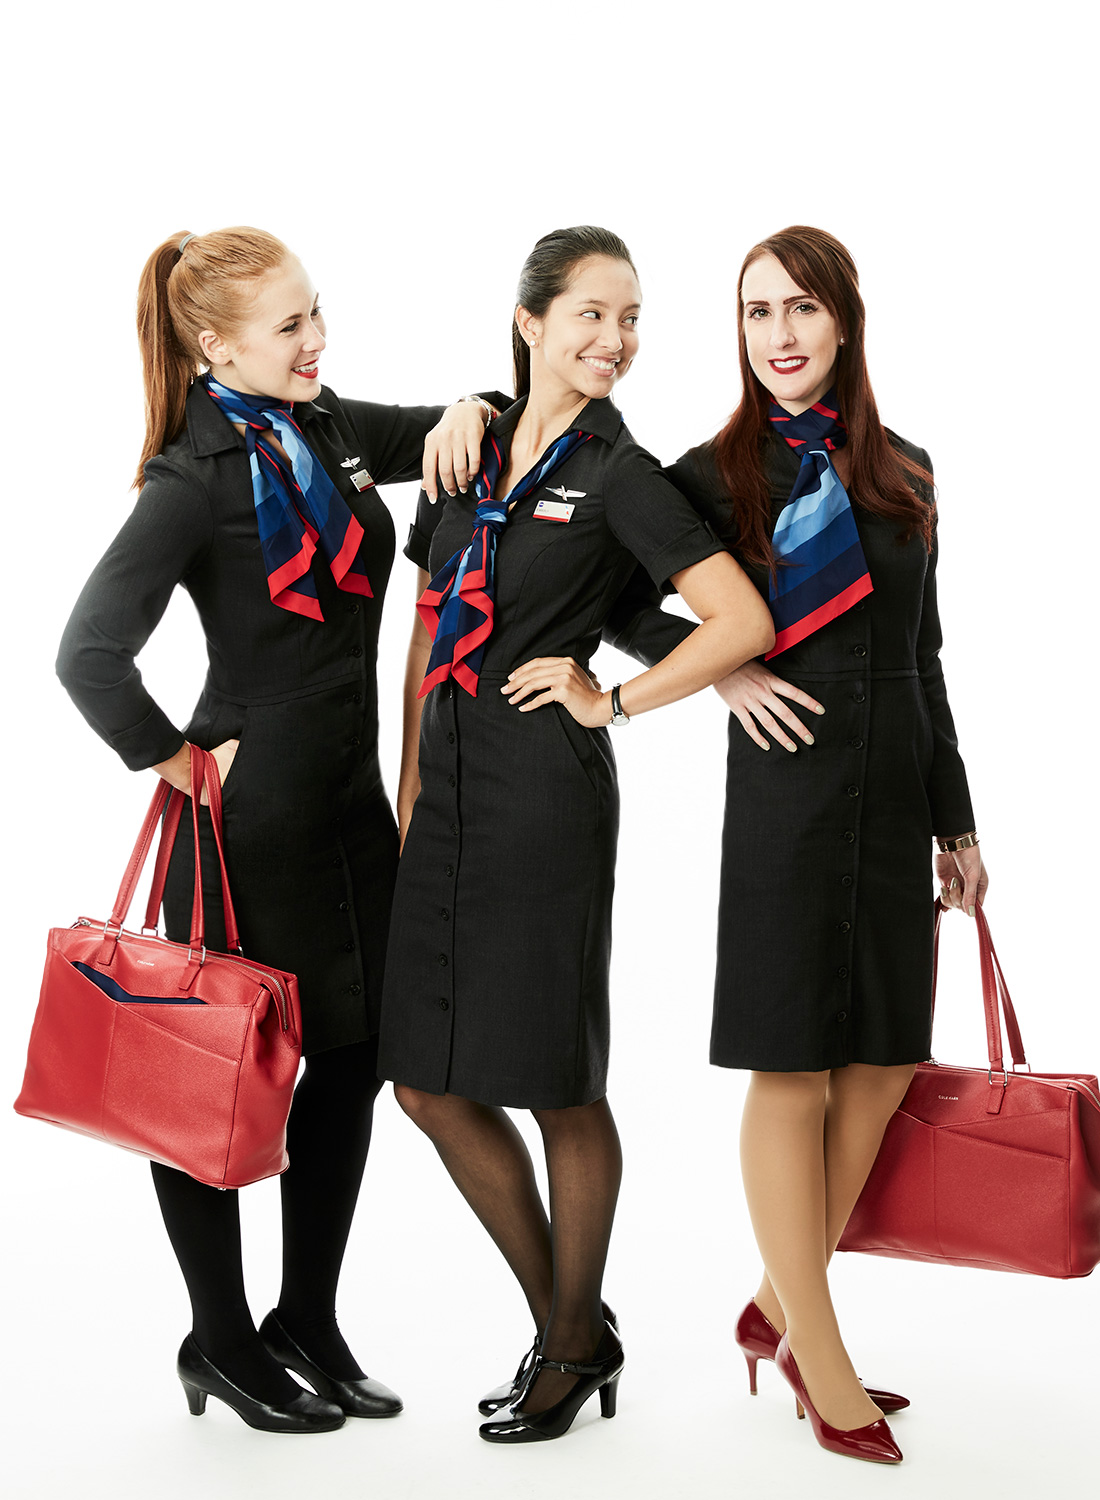 160920_AmericanAirlines_Portraits_By_BriJohnson_0020.jpg